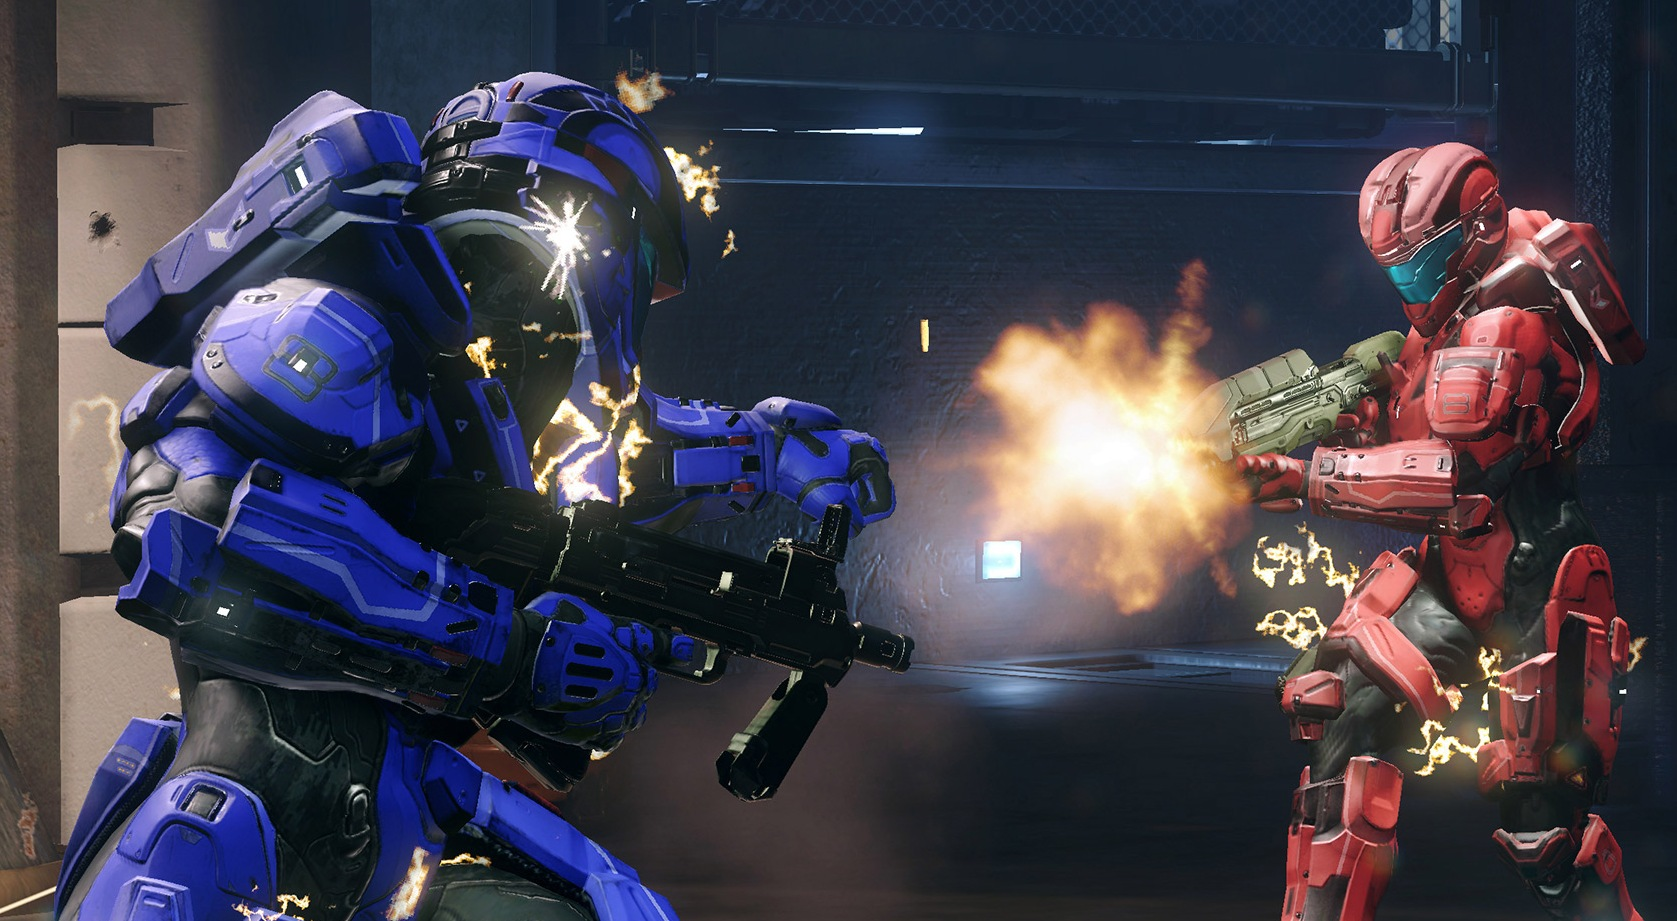 Halo 5: Guardians Multiplayer: You Have to Want It :: Games :: Paste